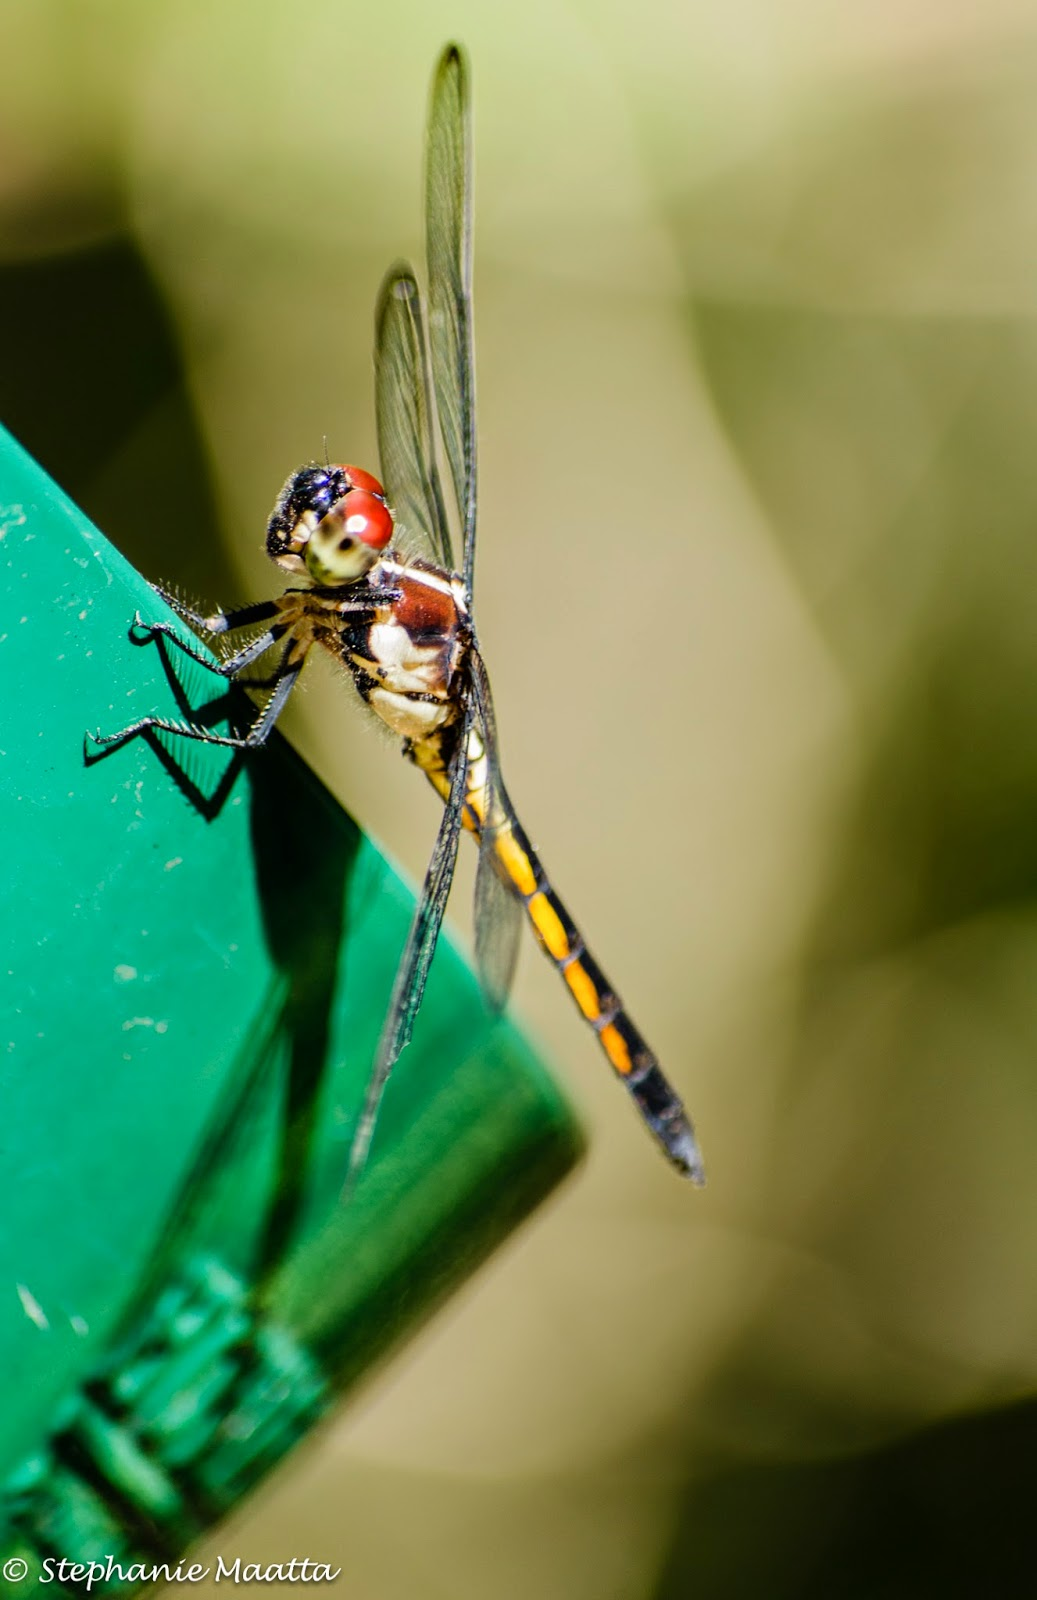 Wandering glider, dragonfly image